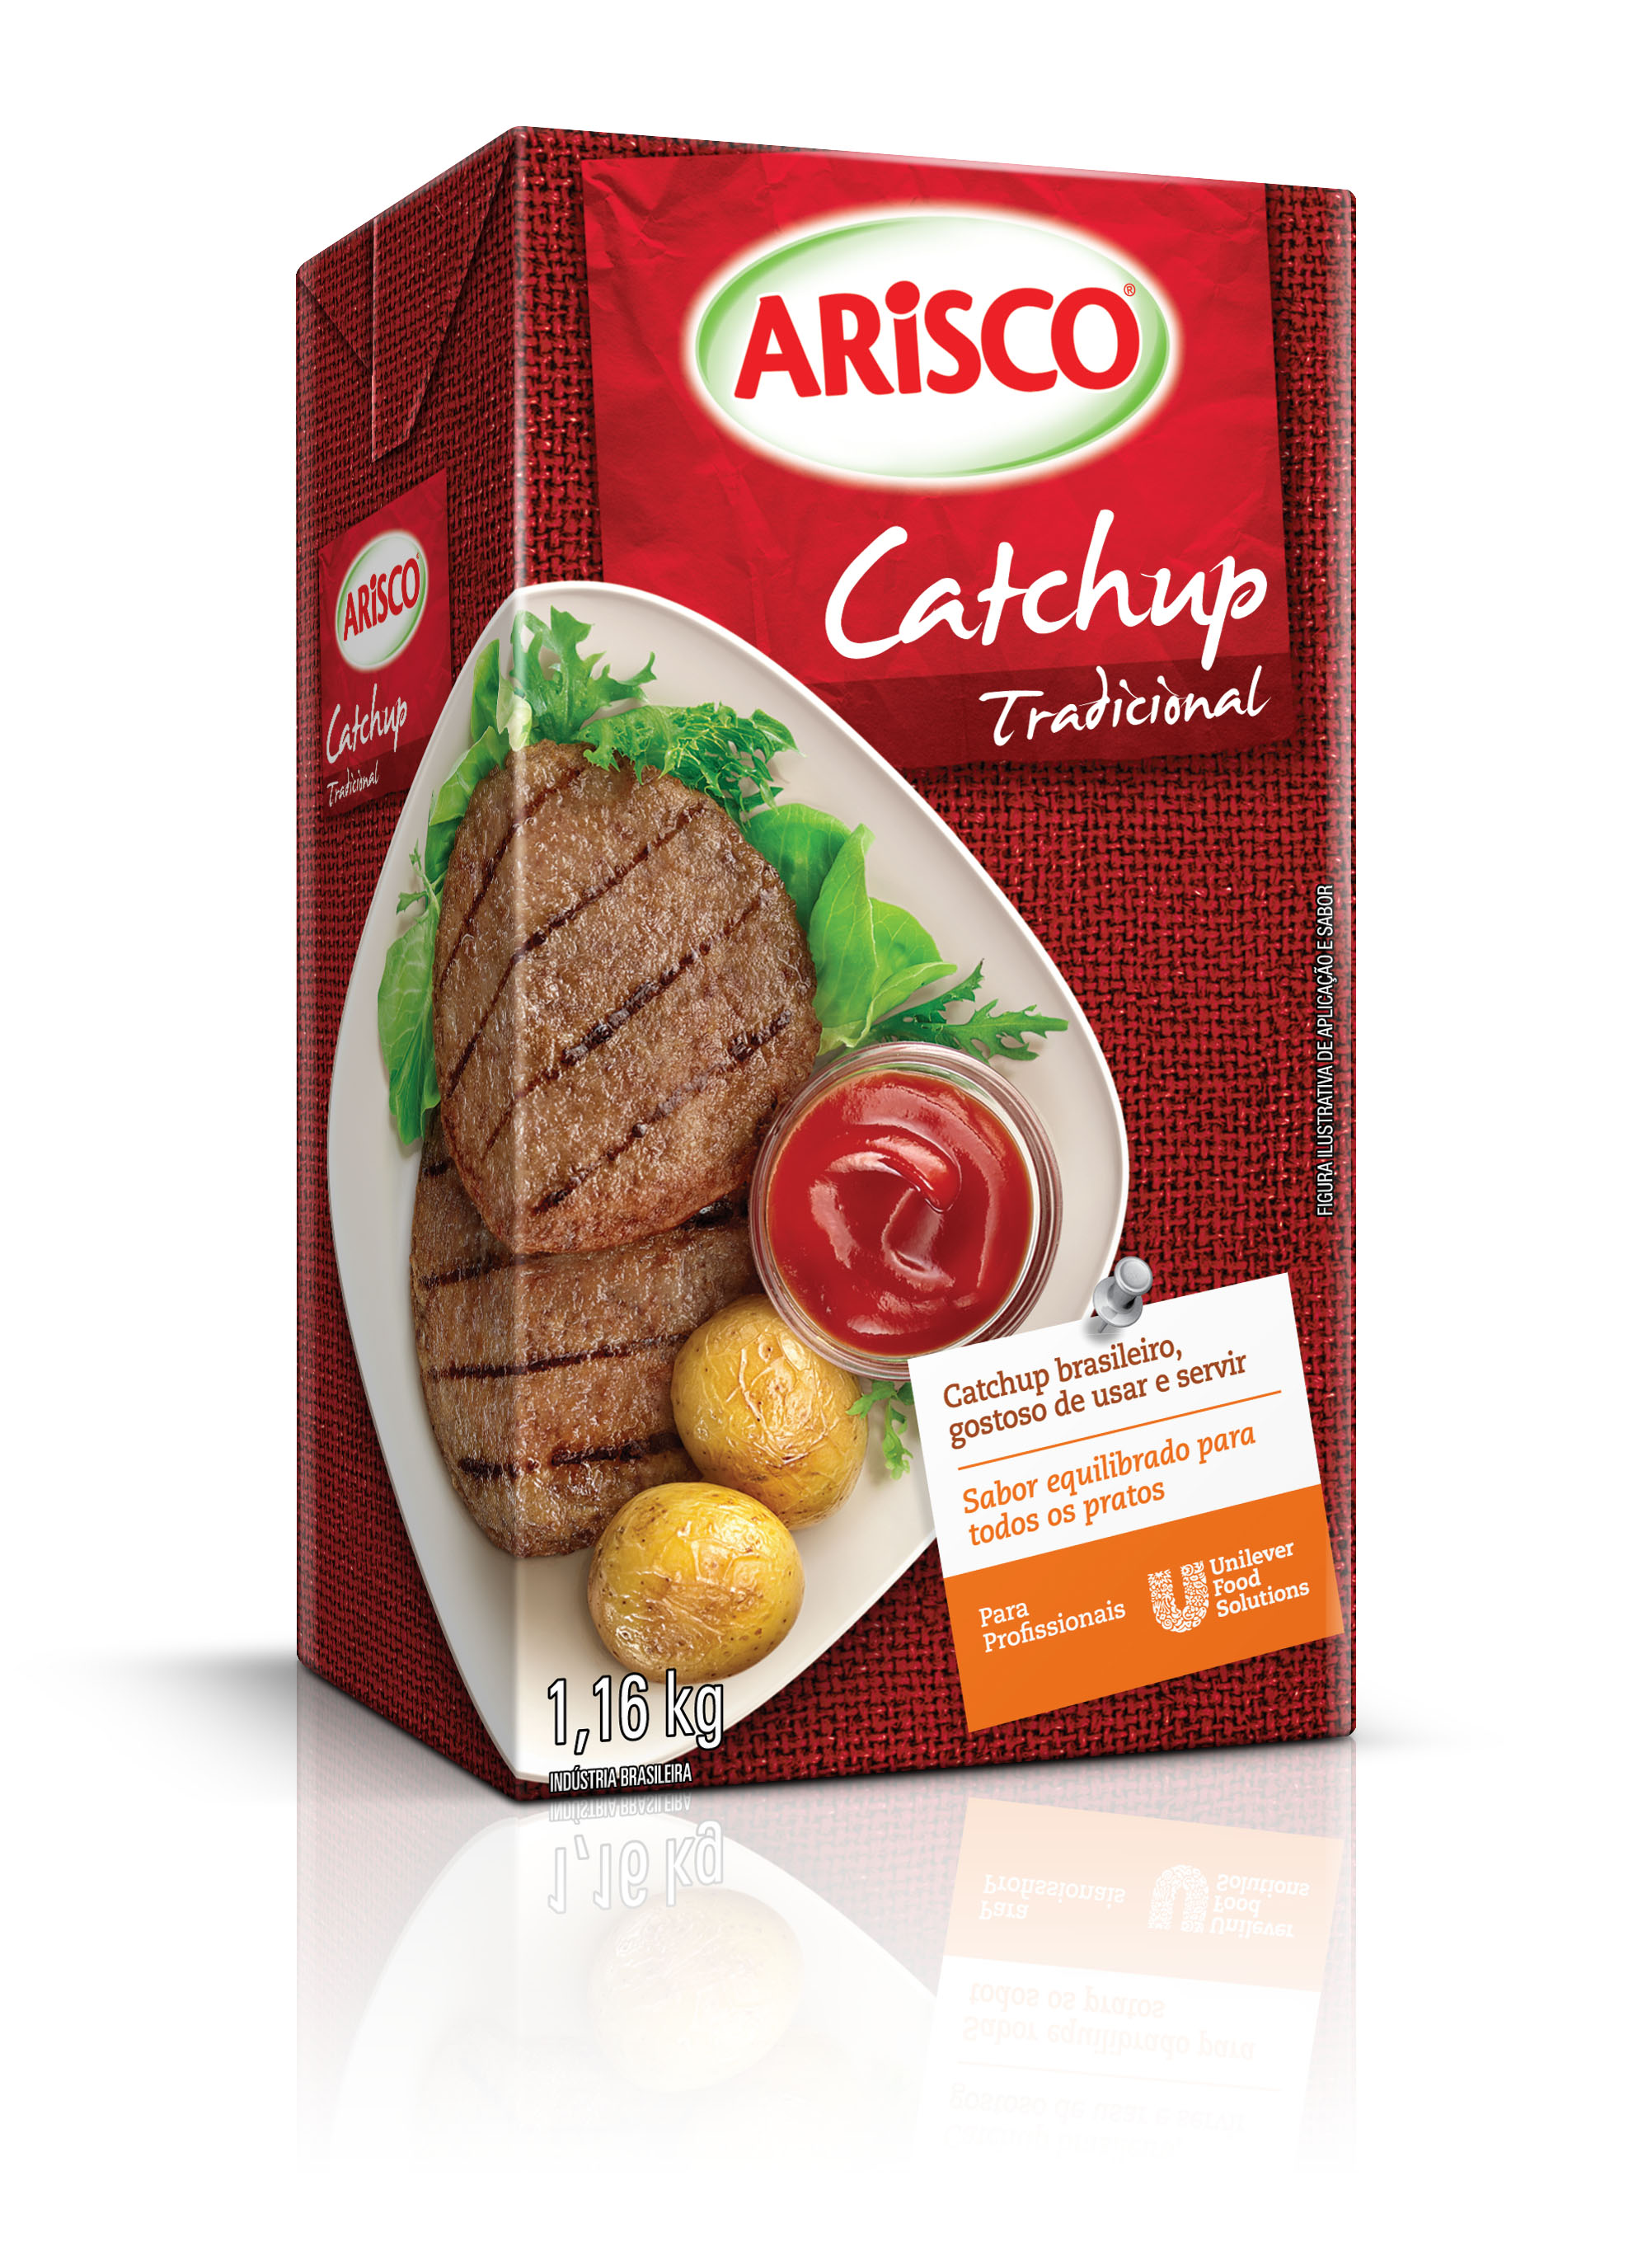 Catchup Arisco 1,16 kg - Catchup Arisco 1,16 kg